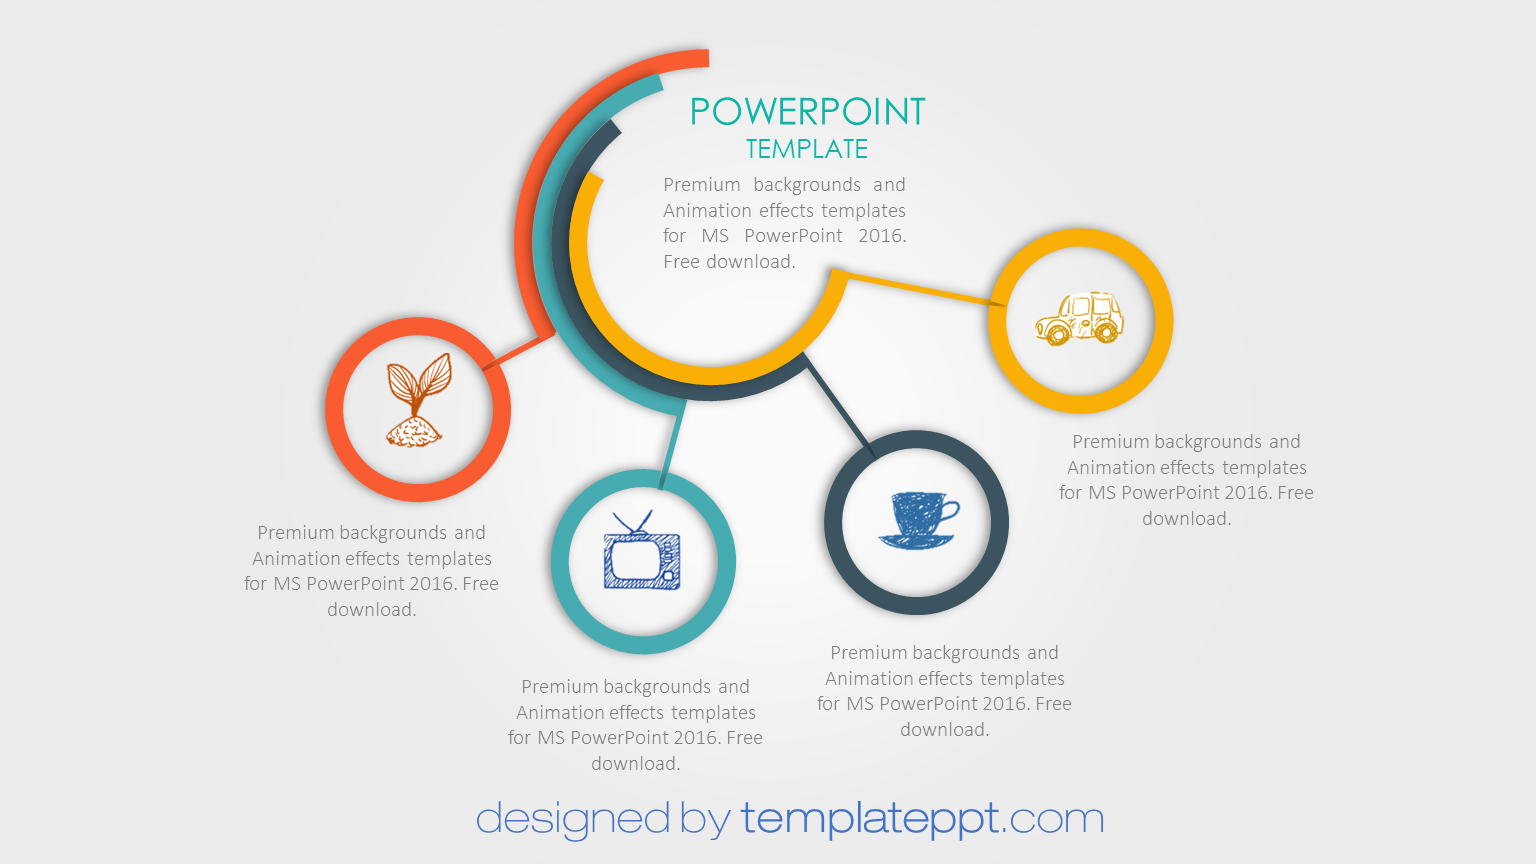 Professional powerpoint templates free download 2016 powerpoint professional powerpoint templates free download 2016 wajeb Gallery